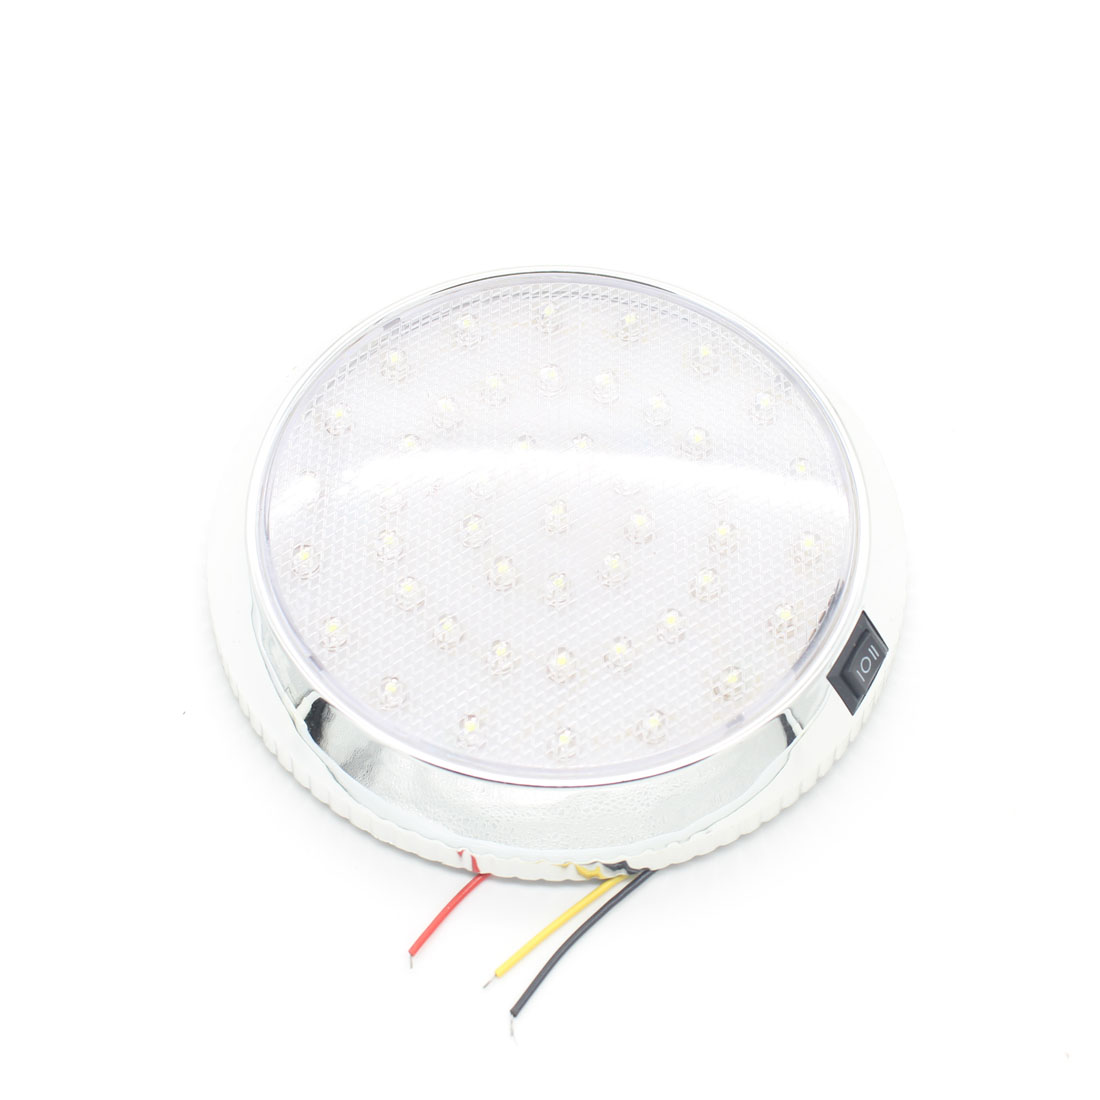 Dongzhen Car LED External Reading Light Dome Festoon Light Interior Light Xenon Car Styling Automobiles Blue White Universal dongzhen car led external reading light dome festoon light interior light xenon car styling automobiles blue white universal